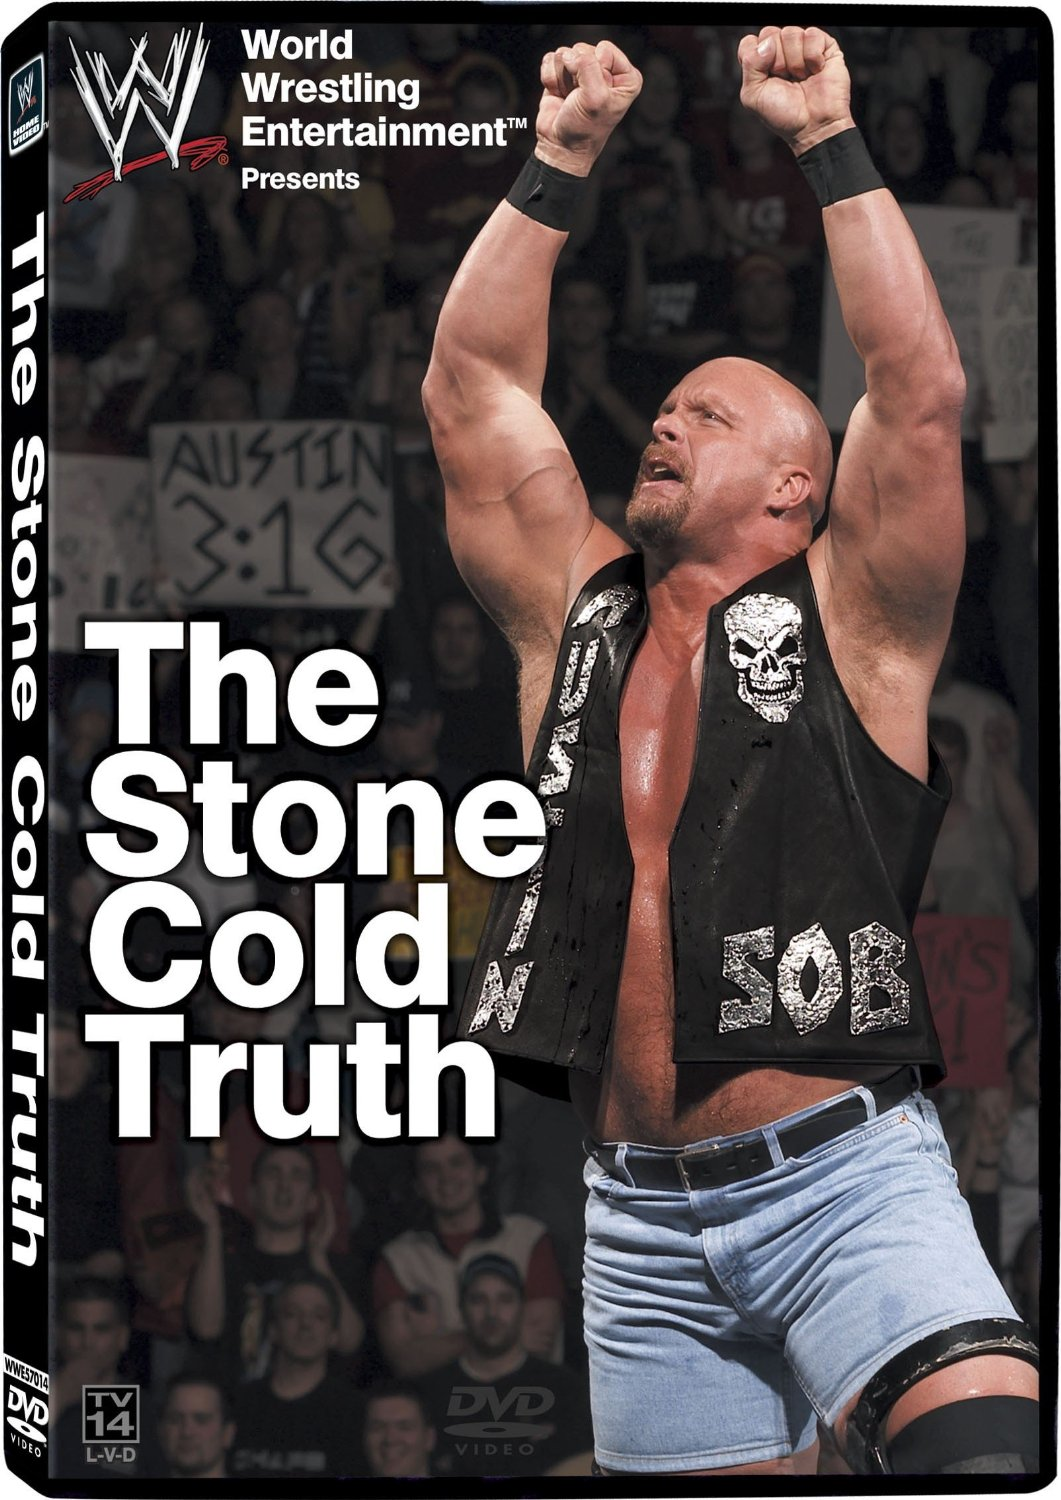 WWE: The Stone Cold Truth (2004) (V) Watch Full Movie Free Online